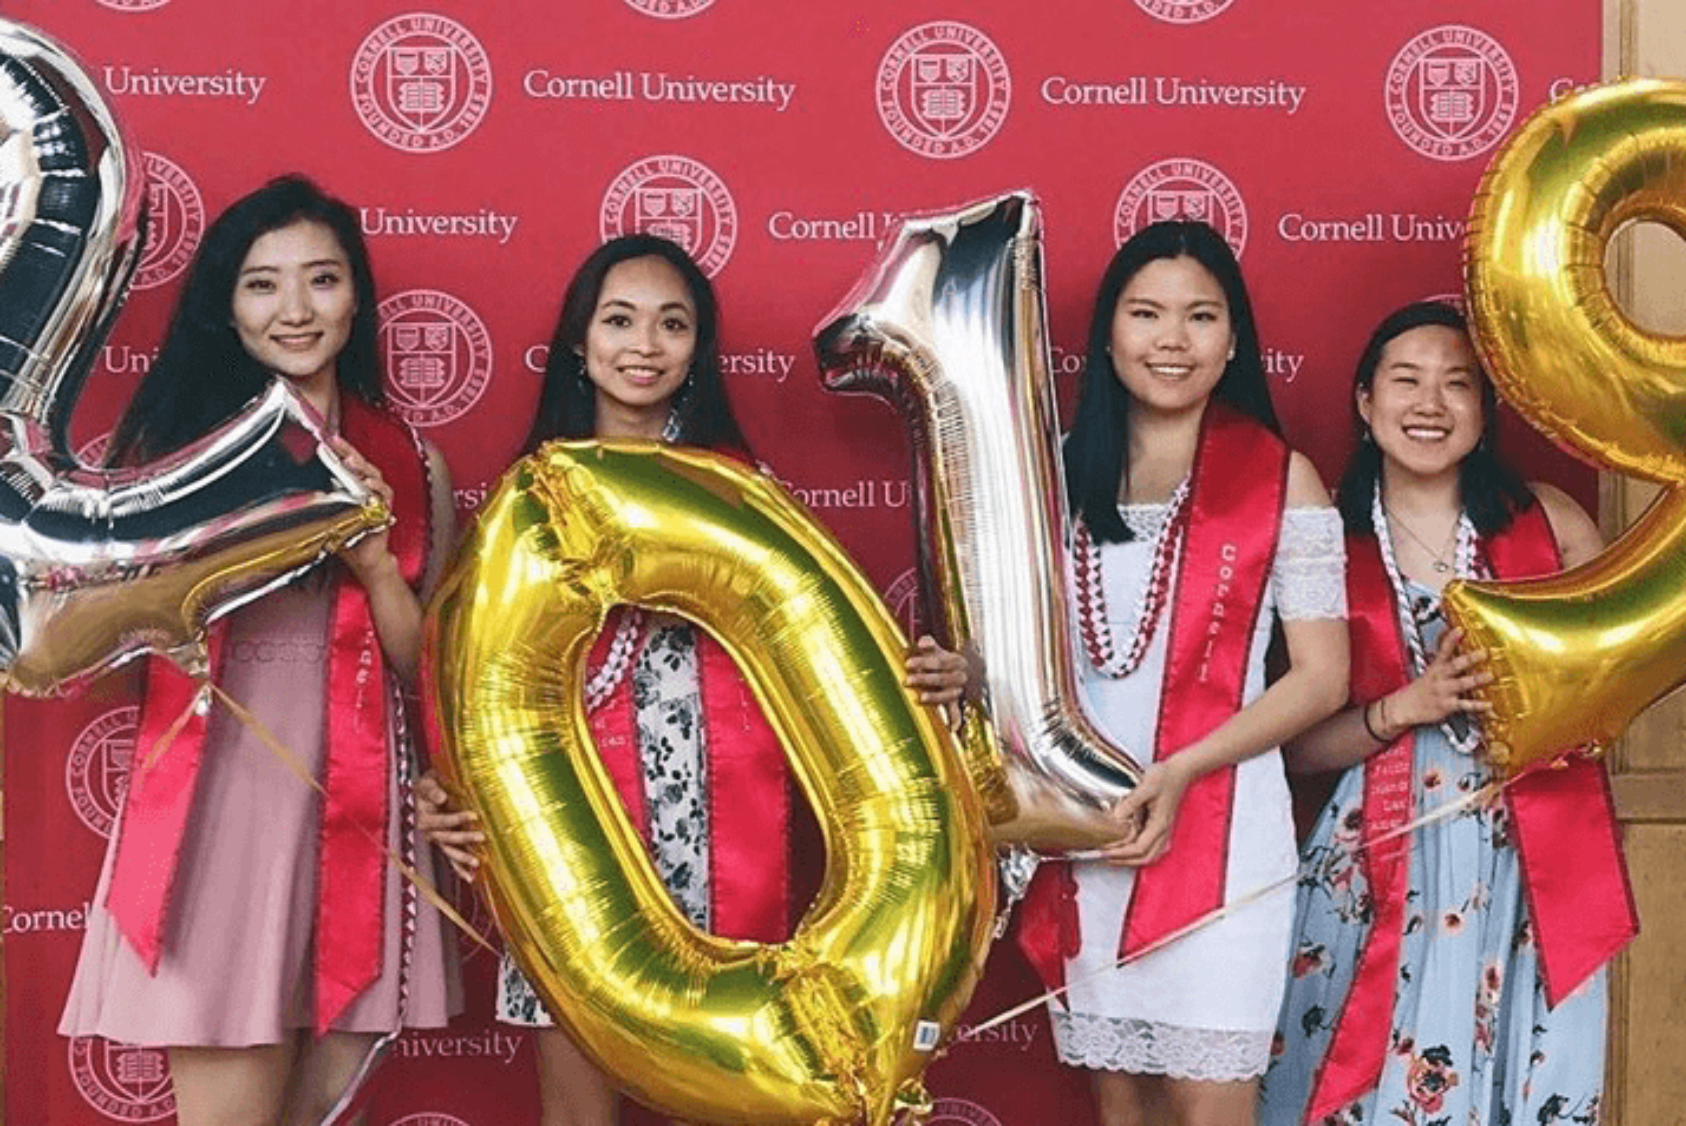 Cornell's Asian, Pacific Islander, Desi/ American (APID/A) community plans to recognize more than 100 students at their second annual graduation ceremony.